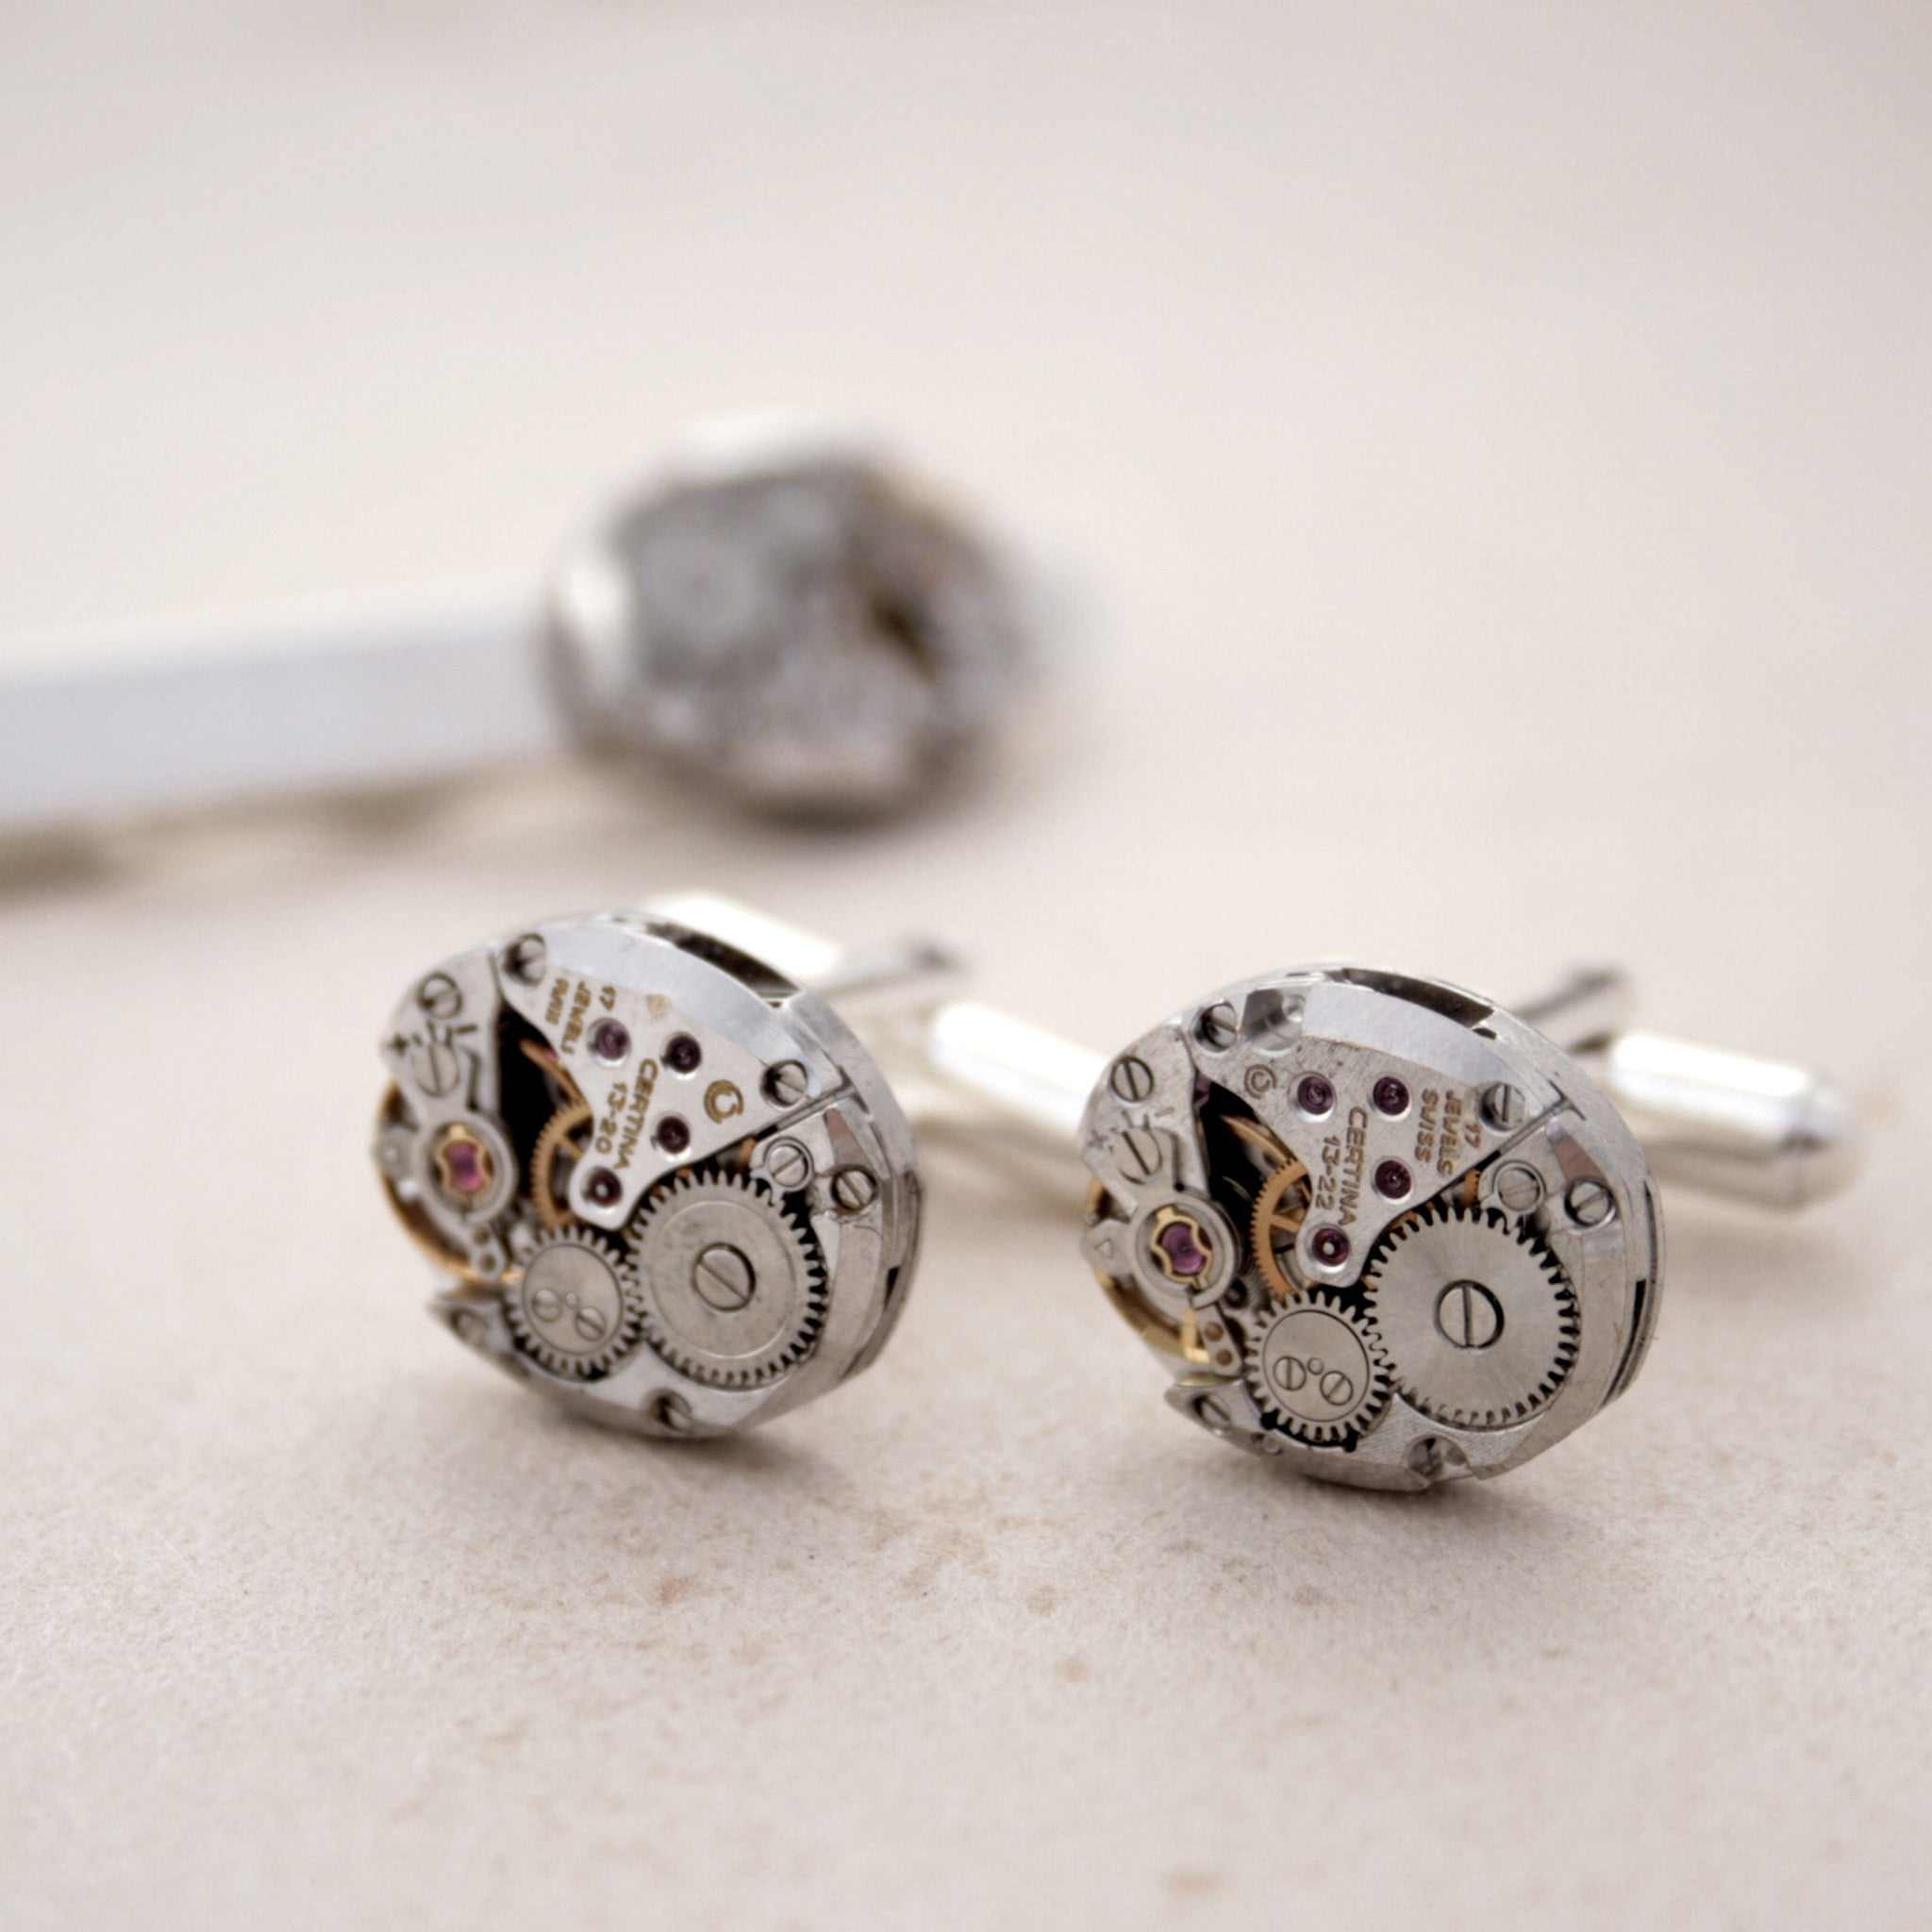 Steampunk Sterling Cufflinks and Tie Clip Set